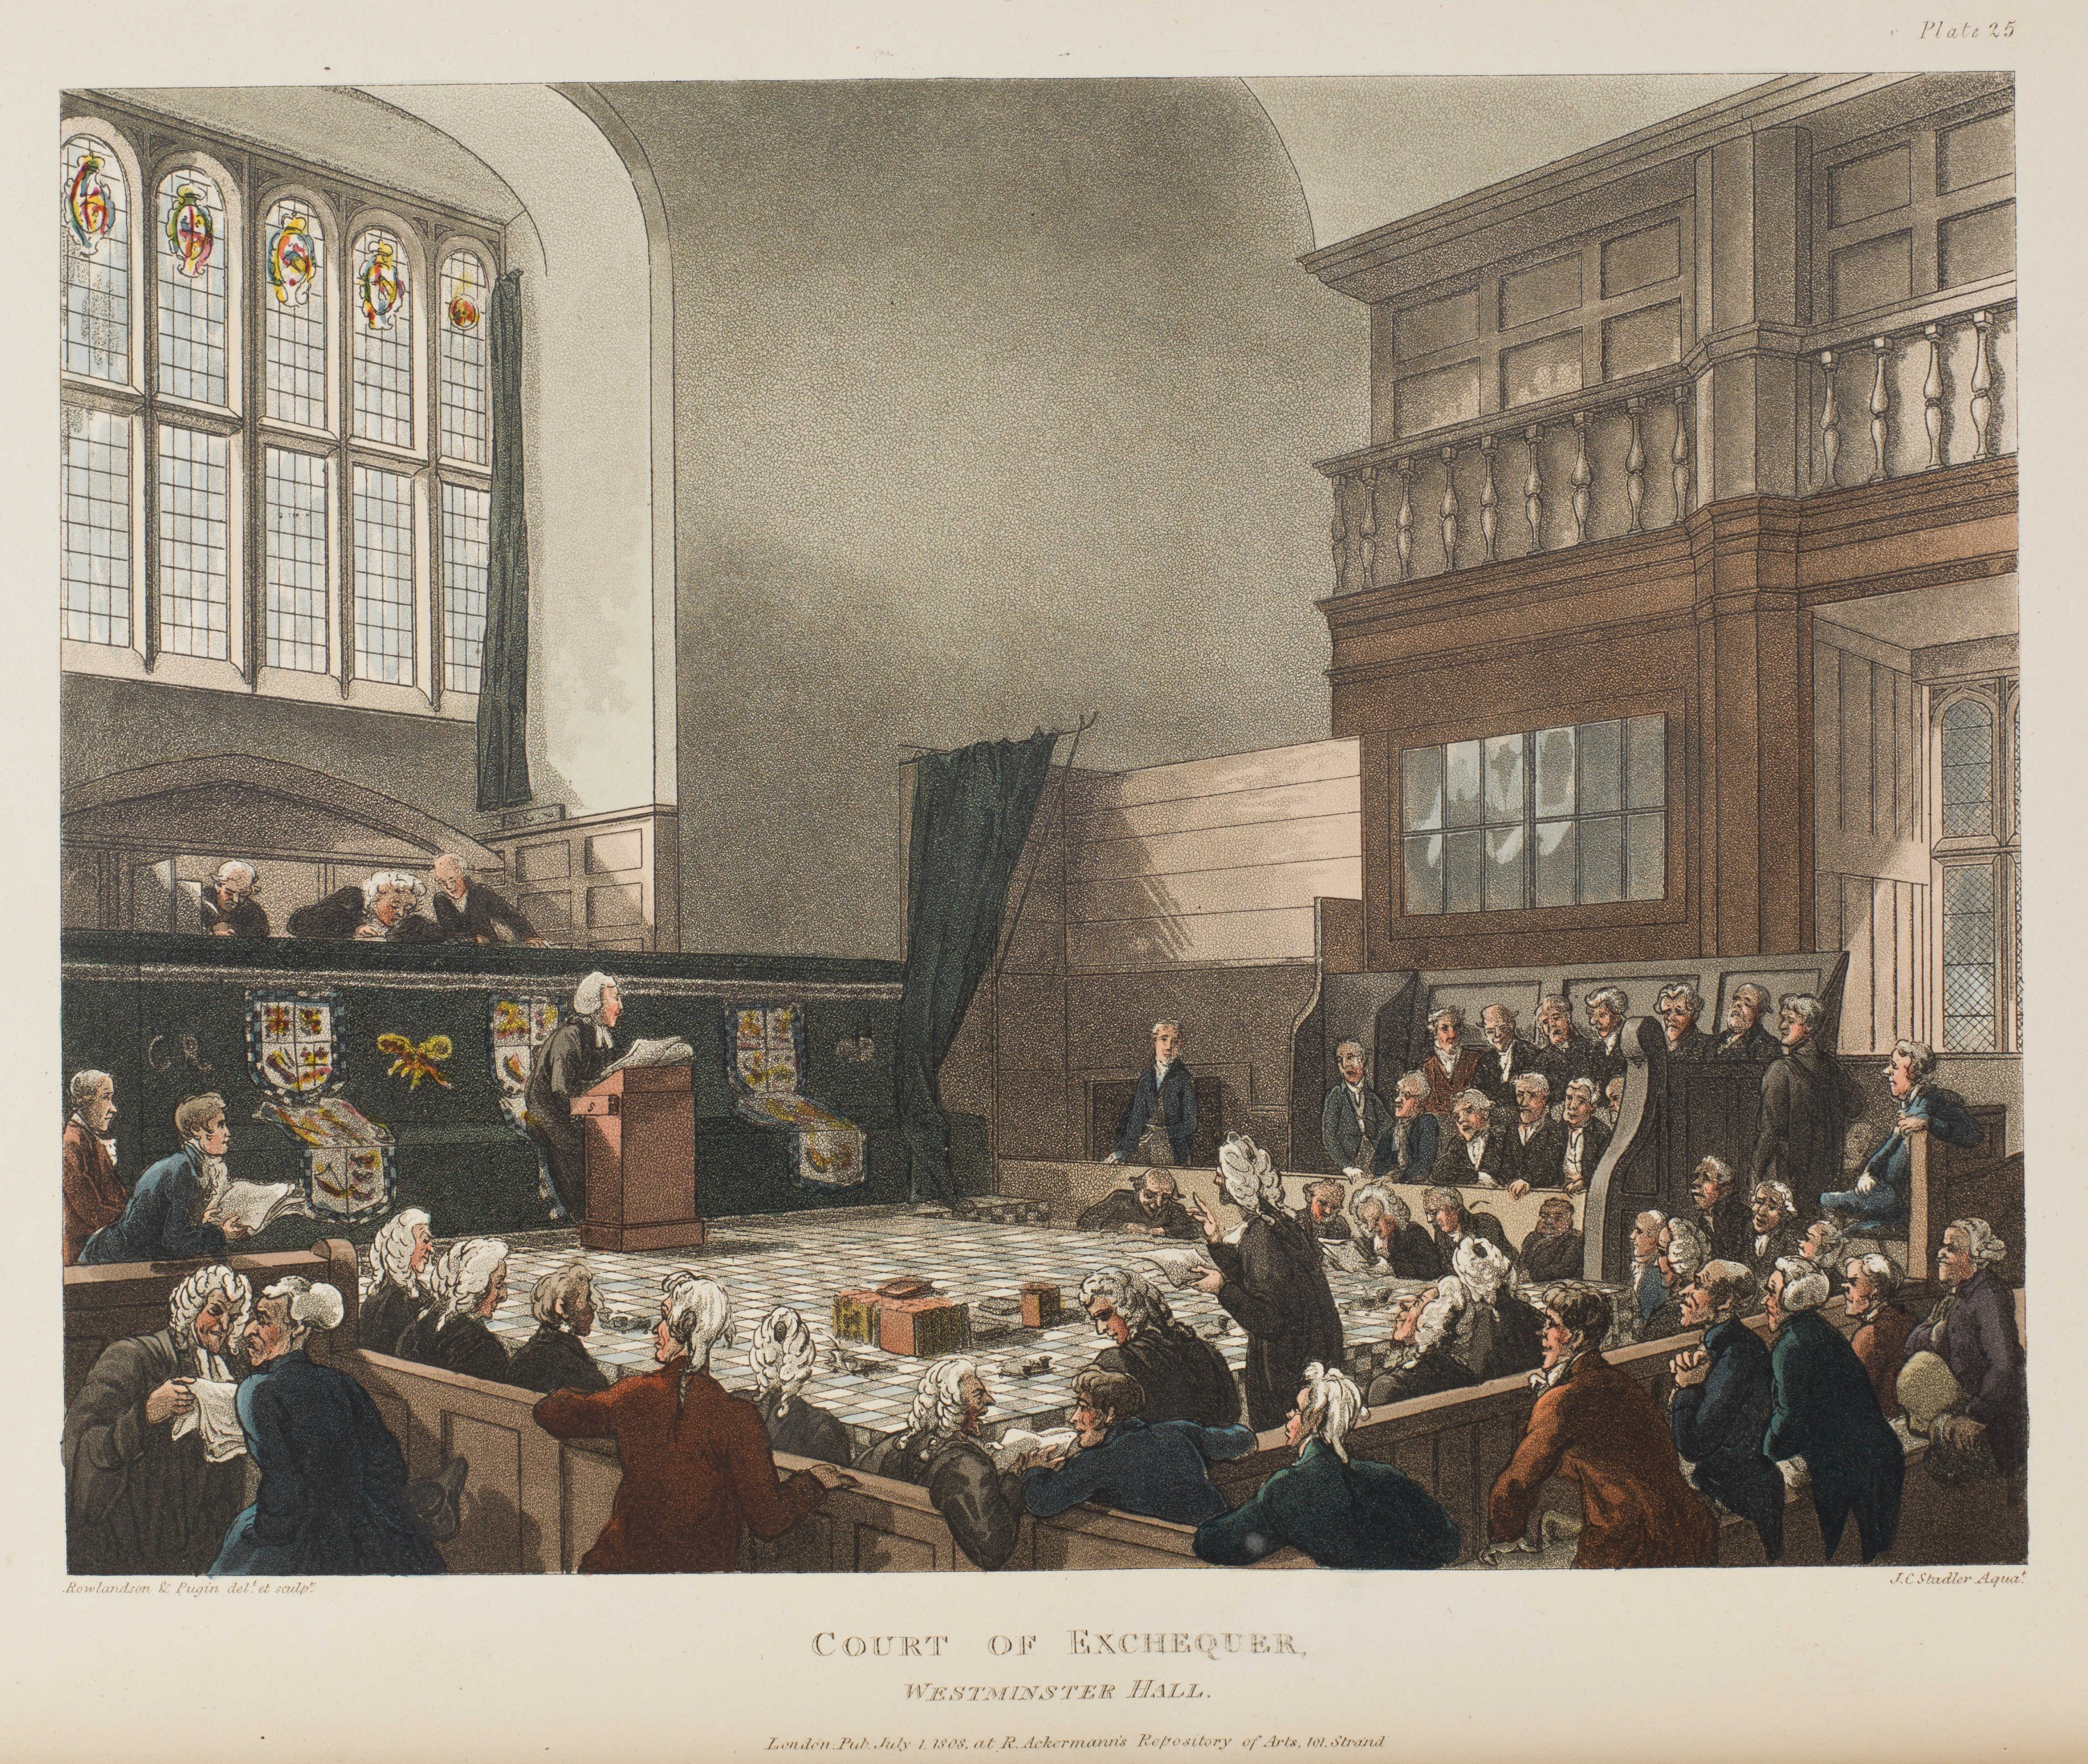 025 - Court of Exchequer, Westminster Hall